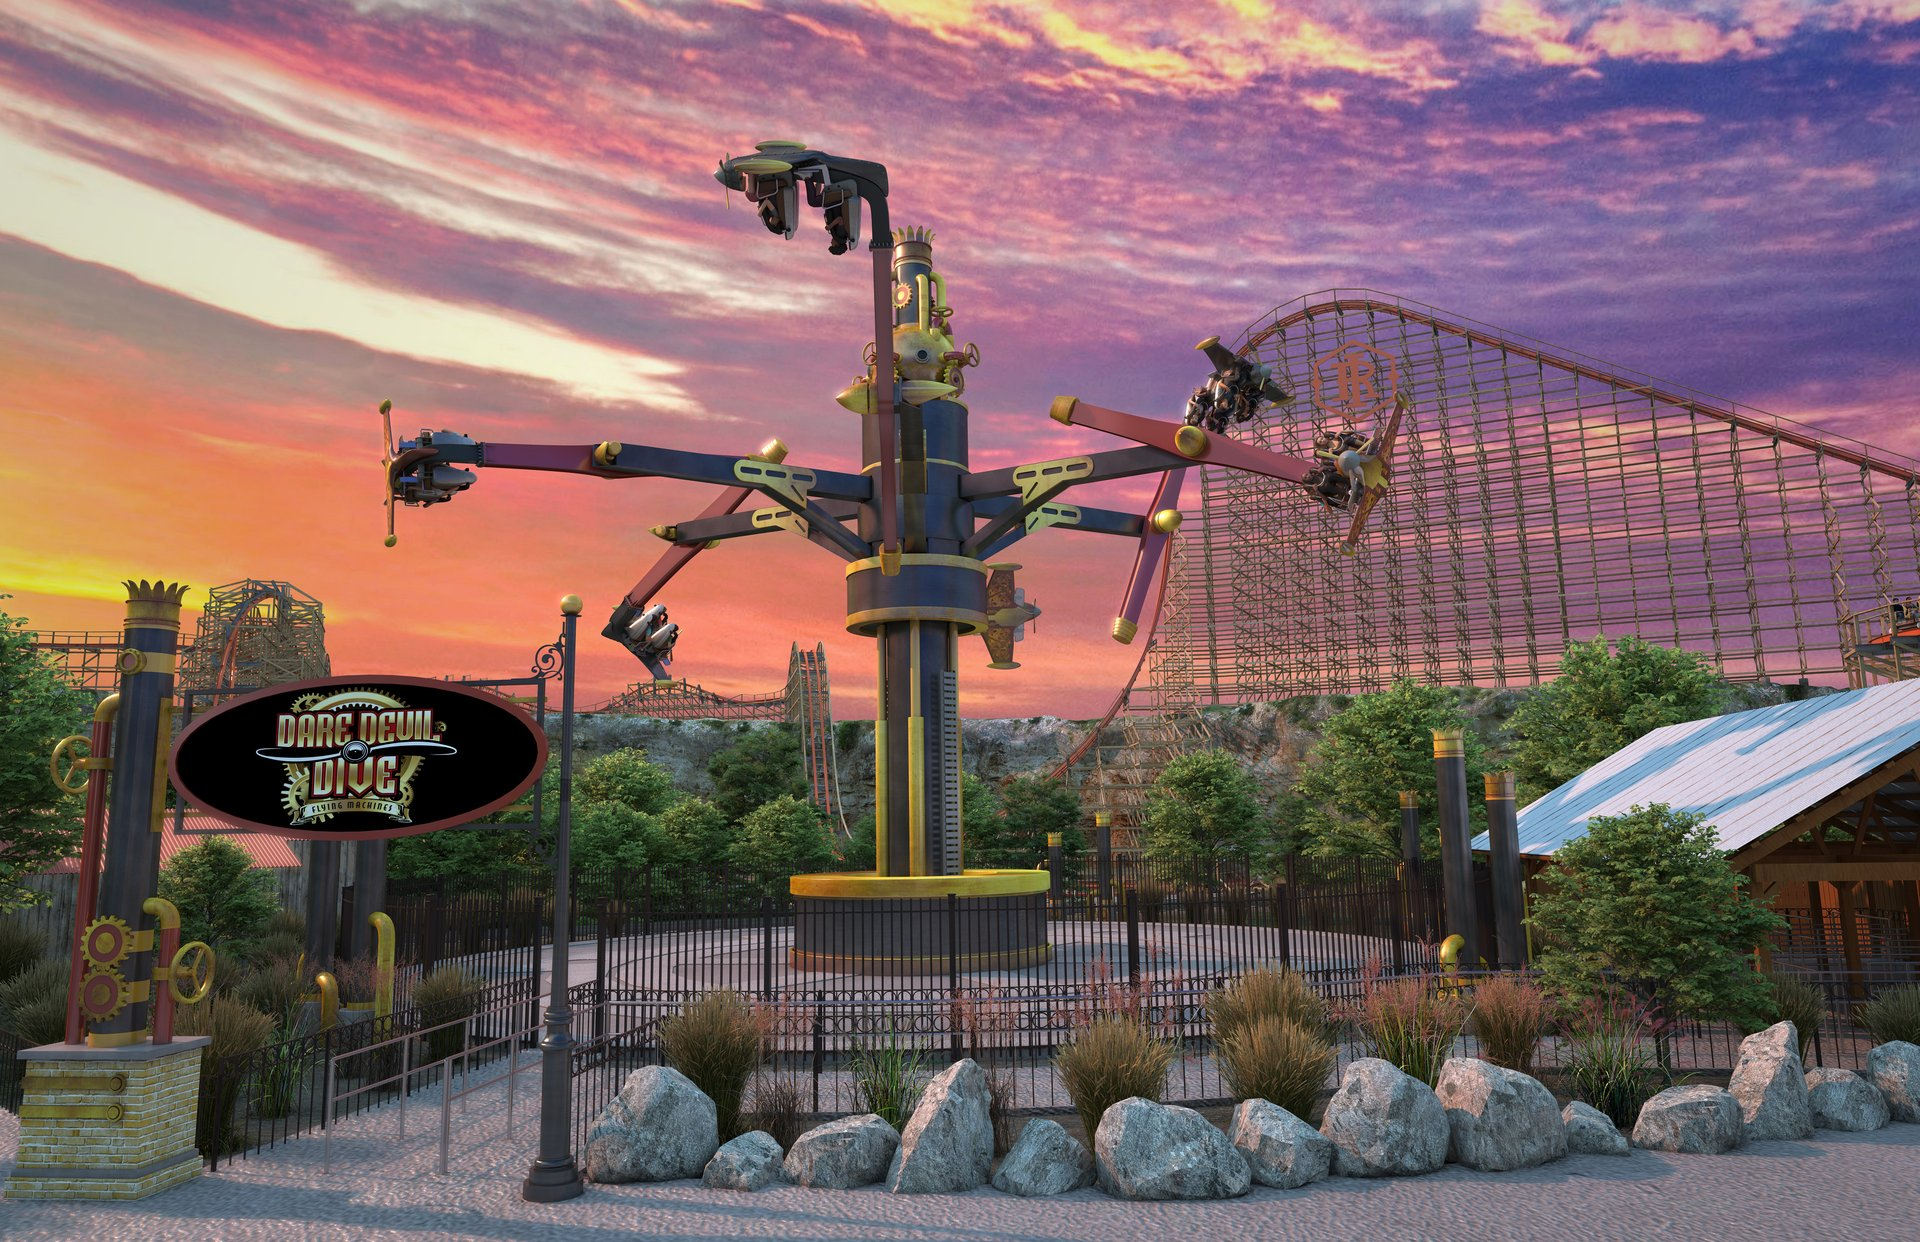 Dare Devil Dive Flying Machines will be located in the park's Crackaxle Canyon section.